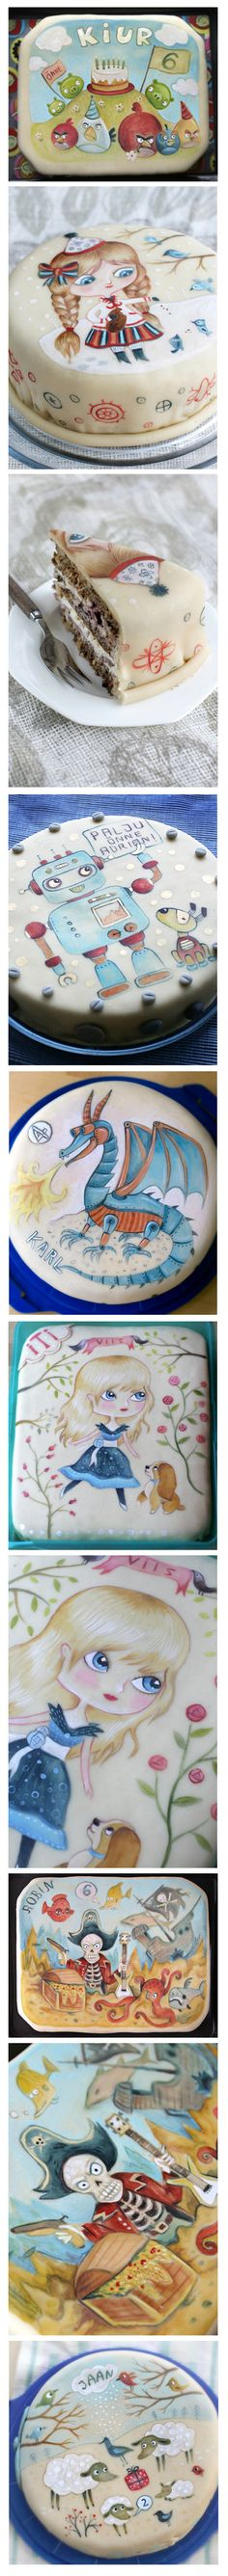 Painted cakes by Elina Sildre